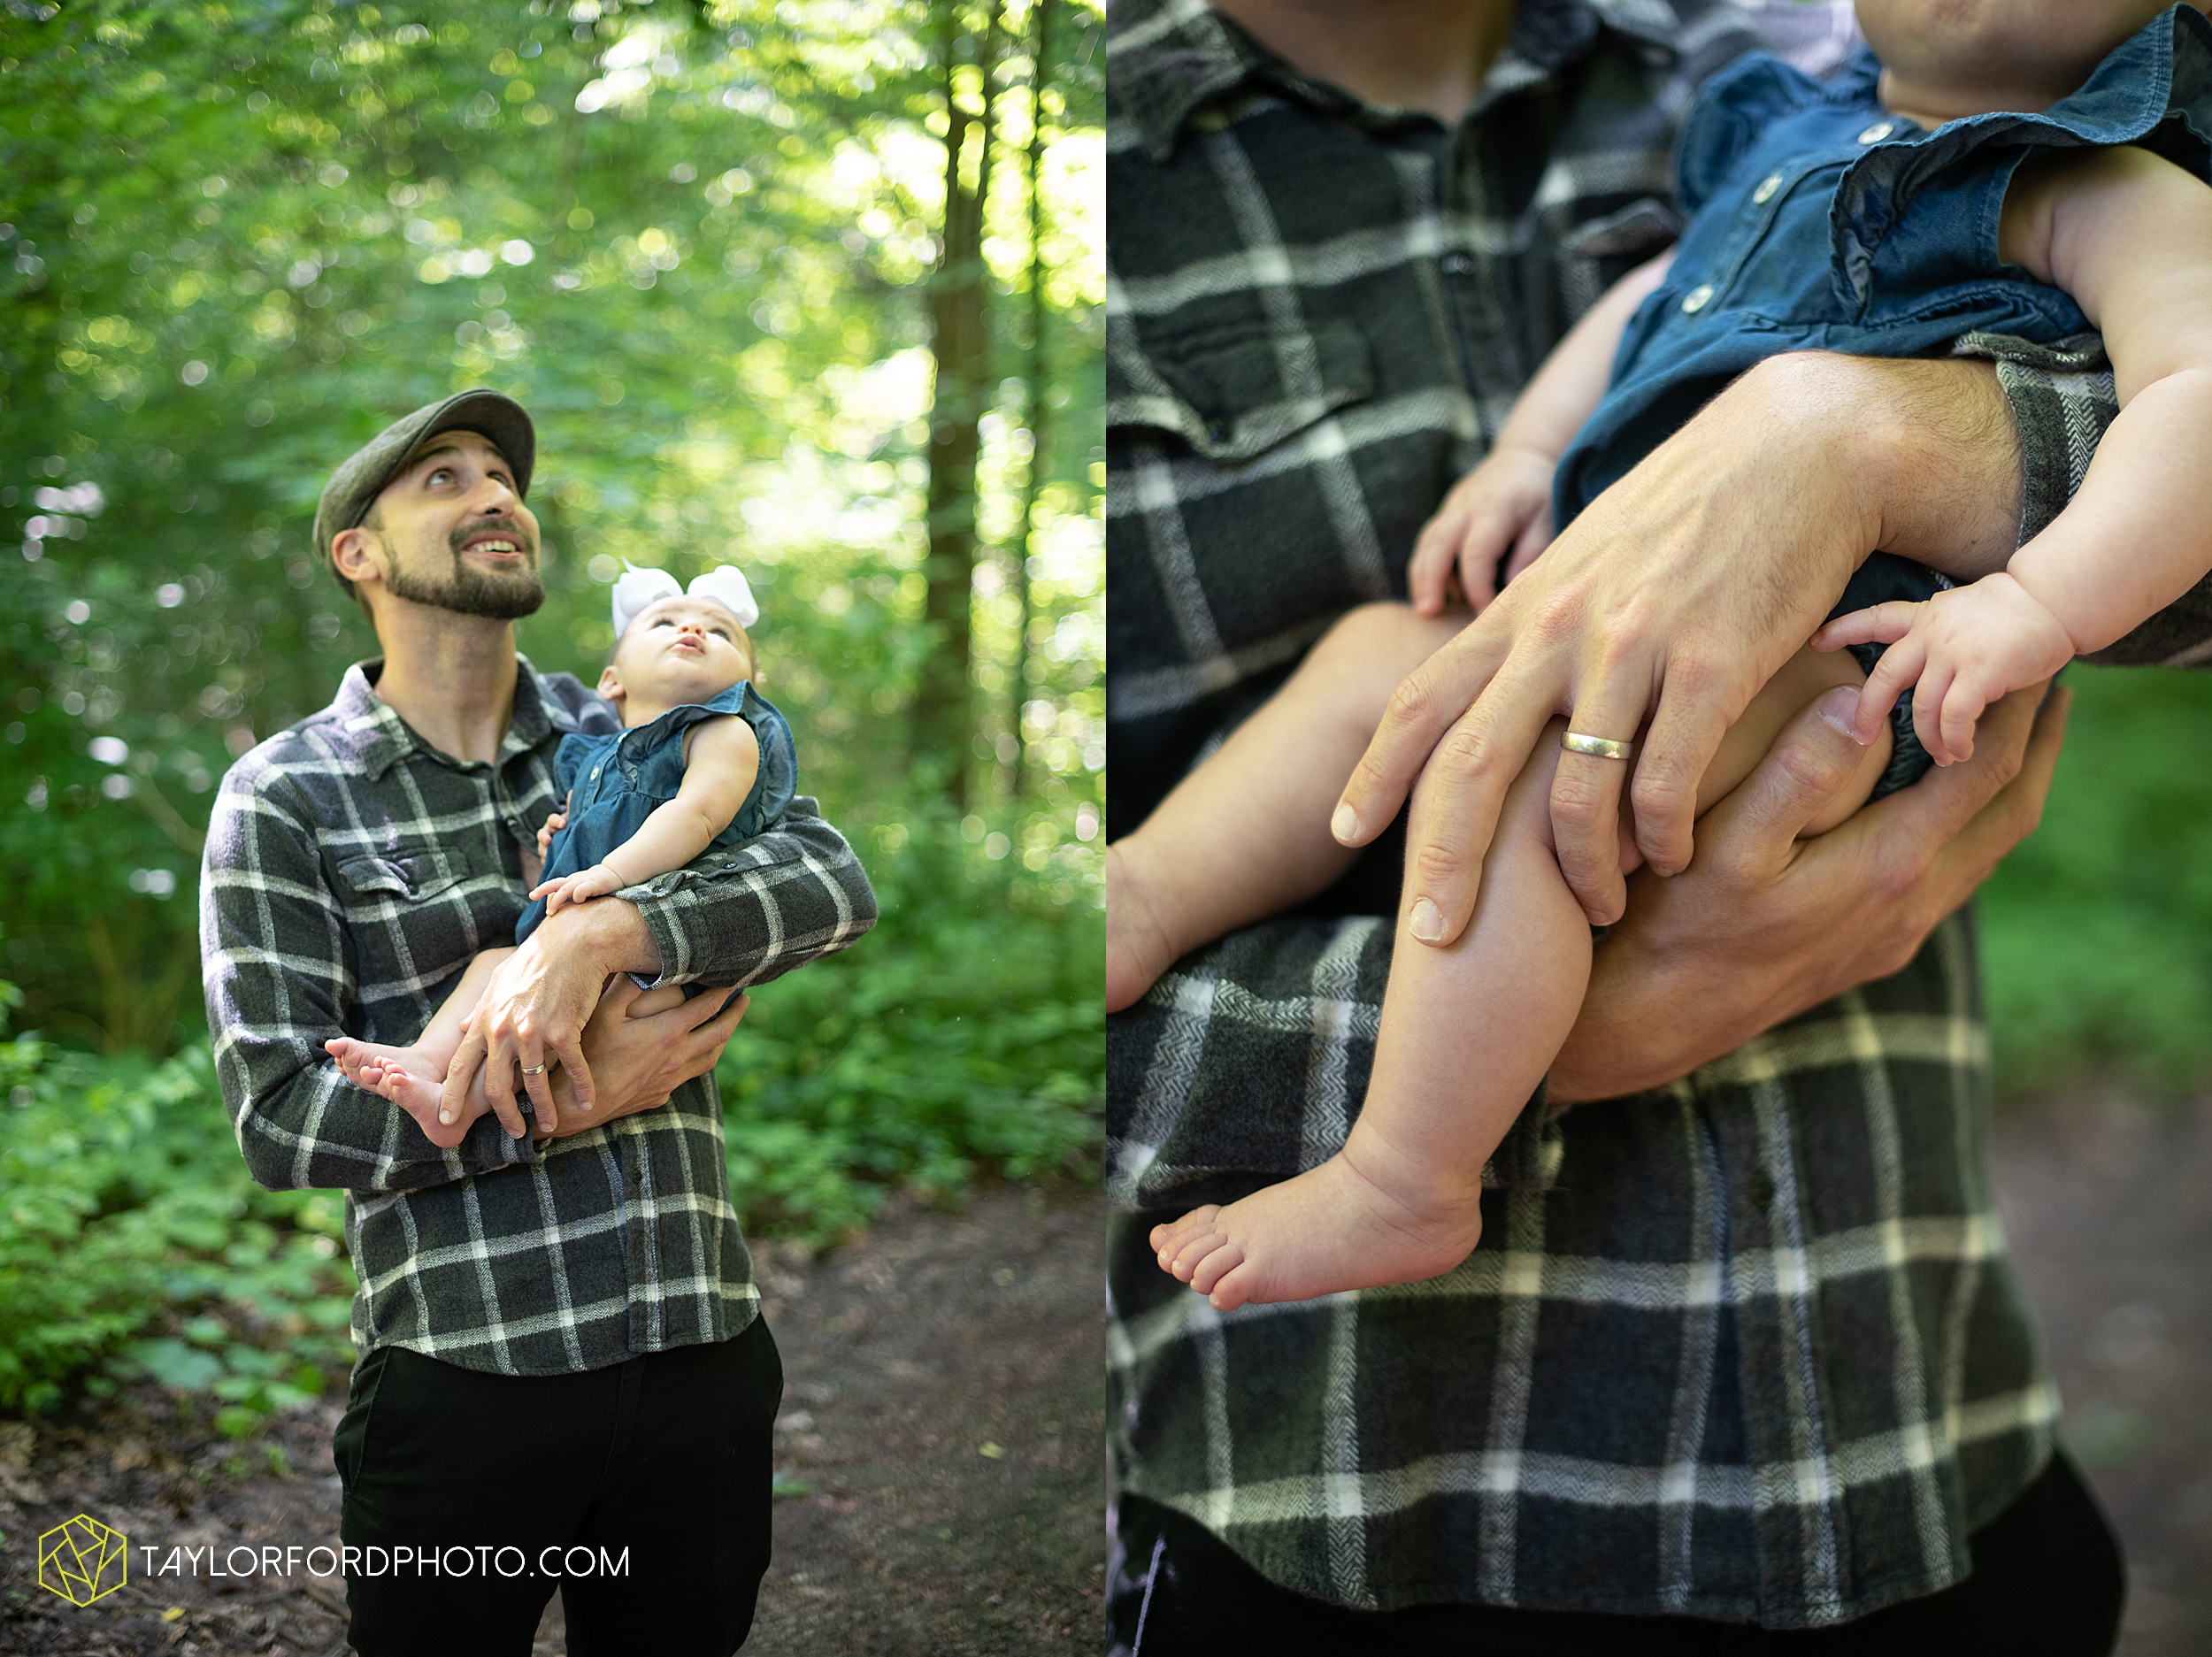 austin-texas-newborn-family-at-home-farm-hiestand-woods-van-wert-county-ohio-farm-family-photography-taylor-ford-hirschy-photographer_3497.jpg